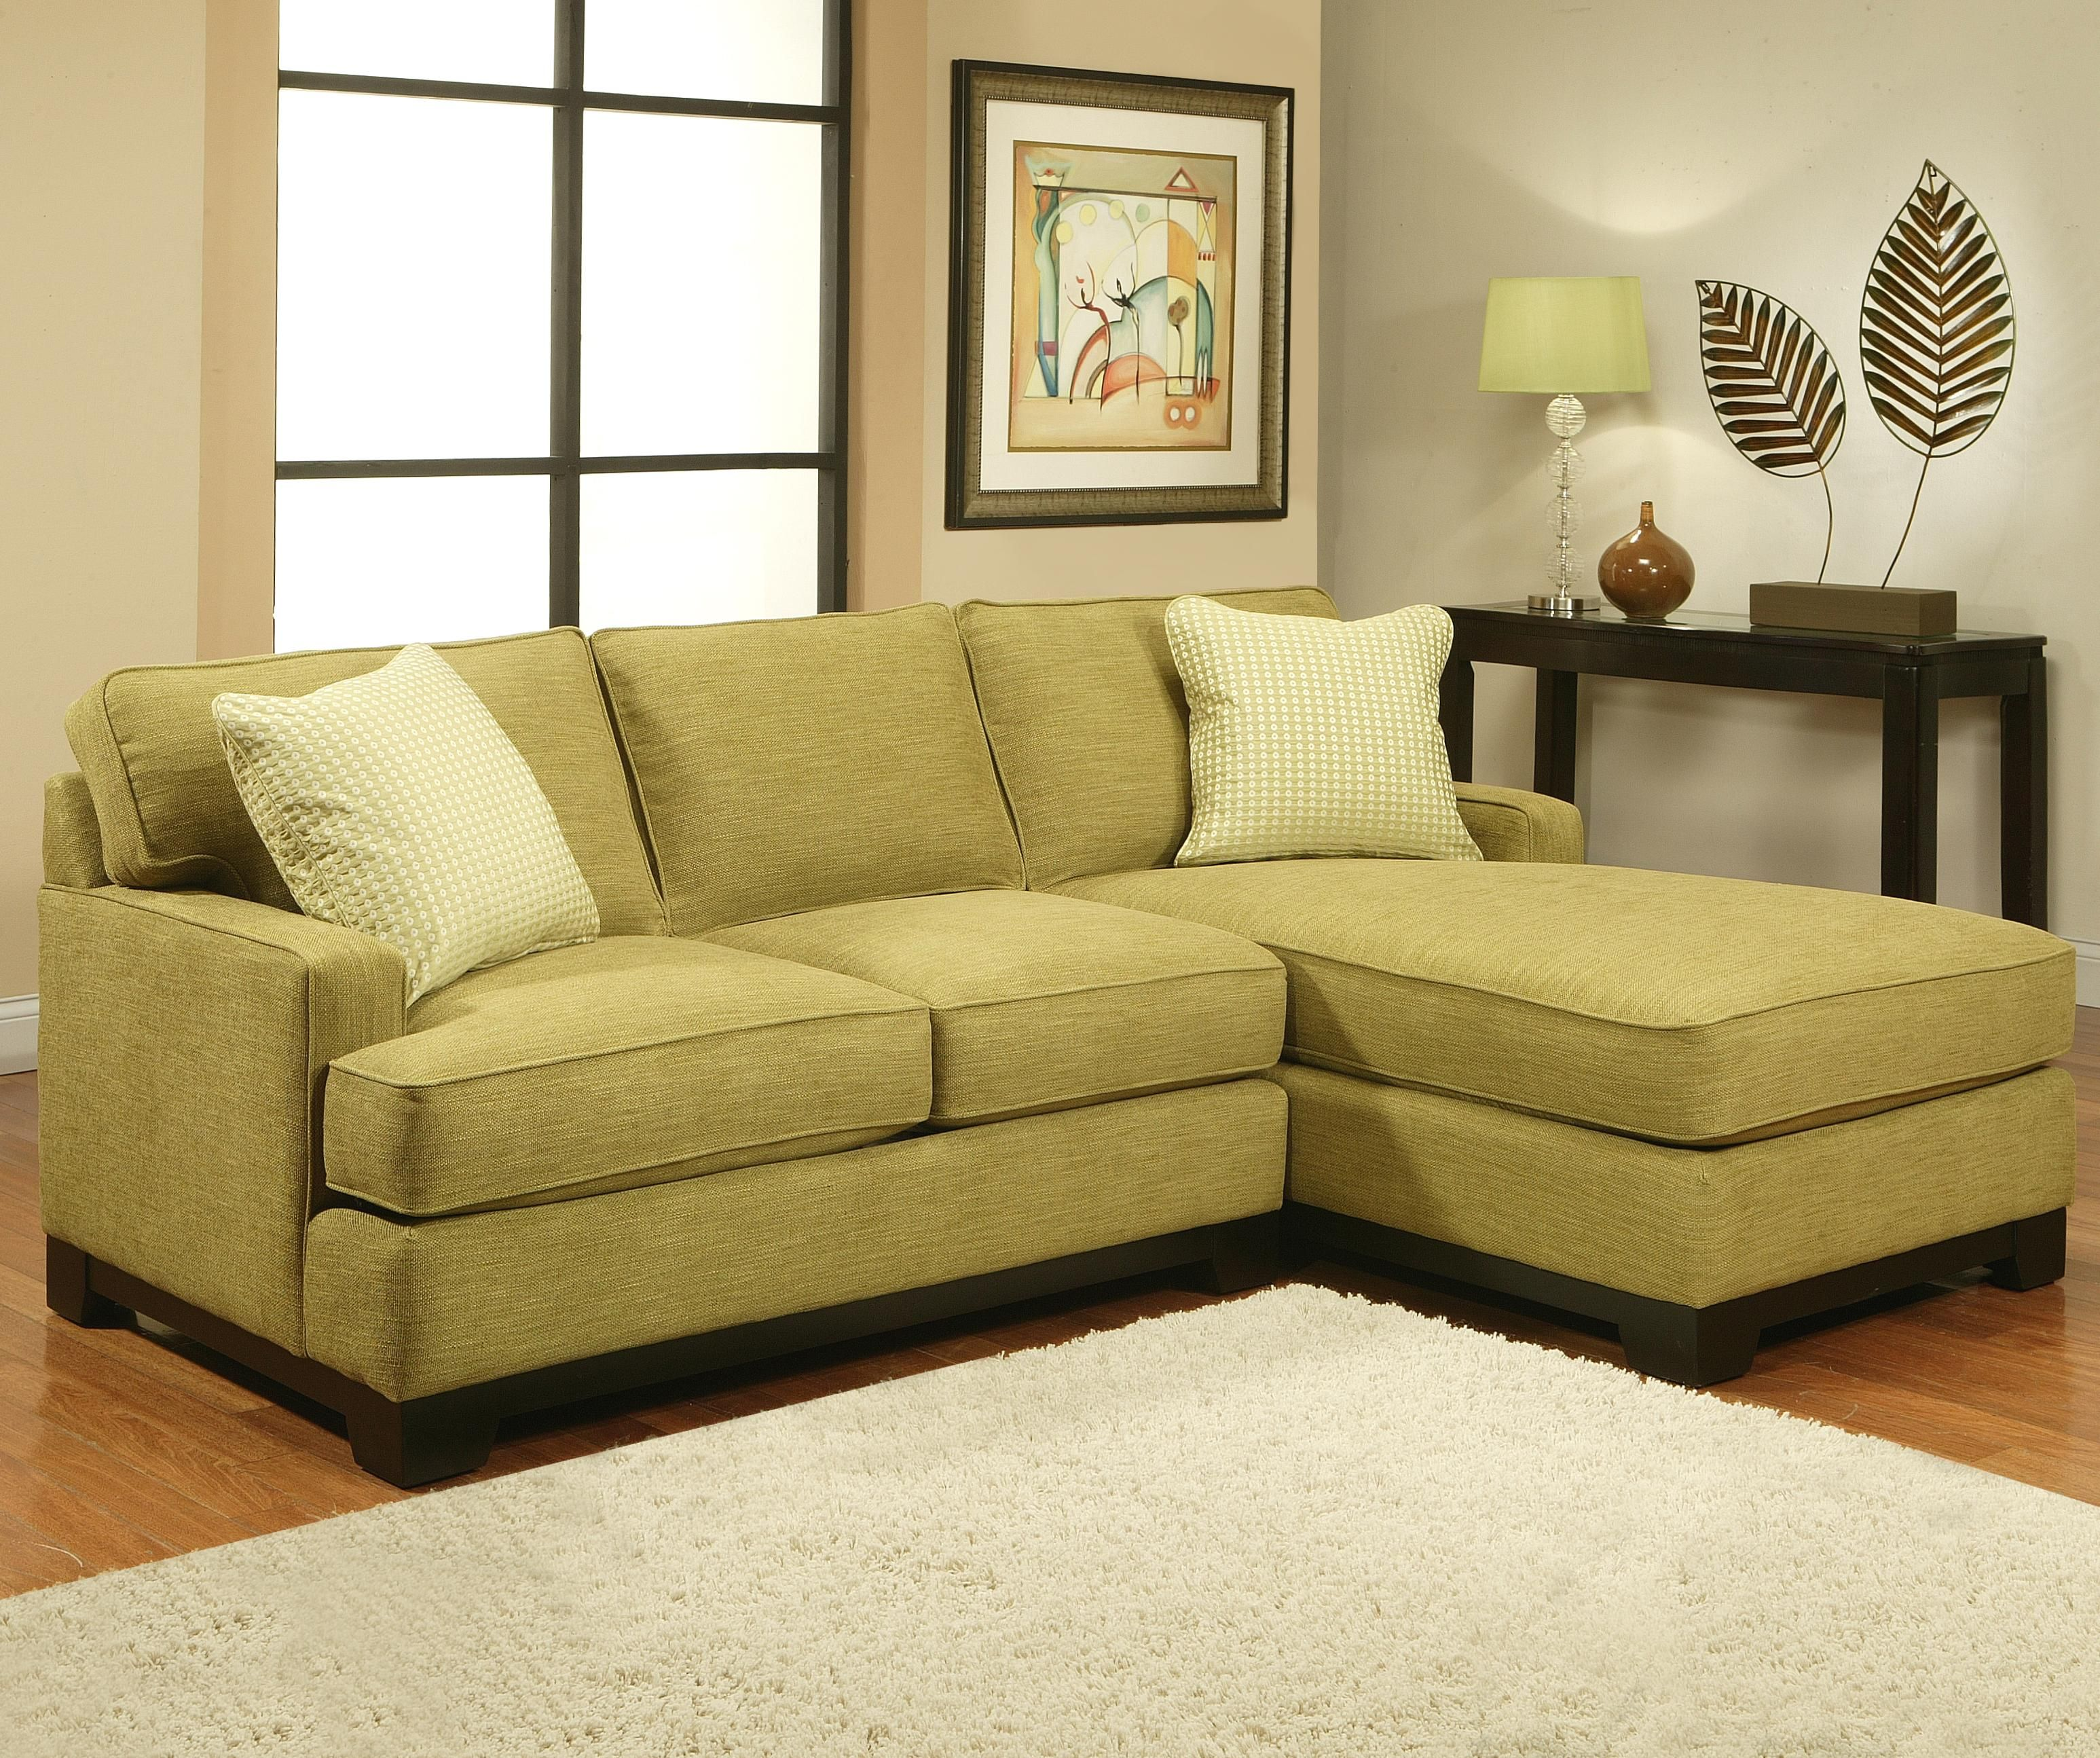 Choices   Kronos Contemporary Sectional Sofa With Track Arms By Jonathan  Louis   Walkeru0027s Furniture   Sofa Sectional Spokane, Kennewick Washington,  ...